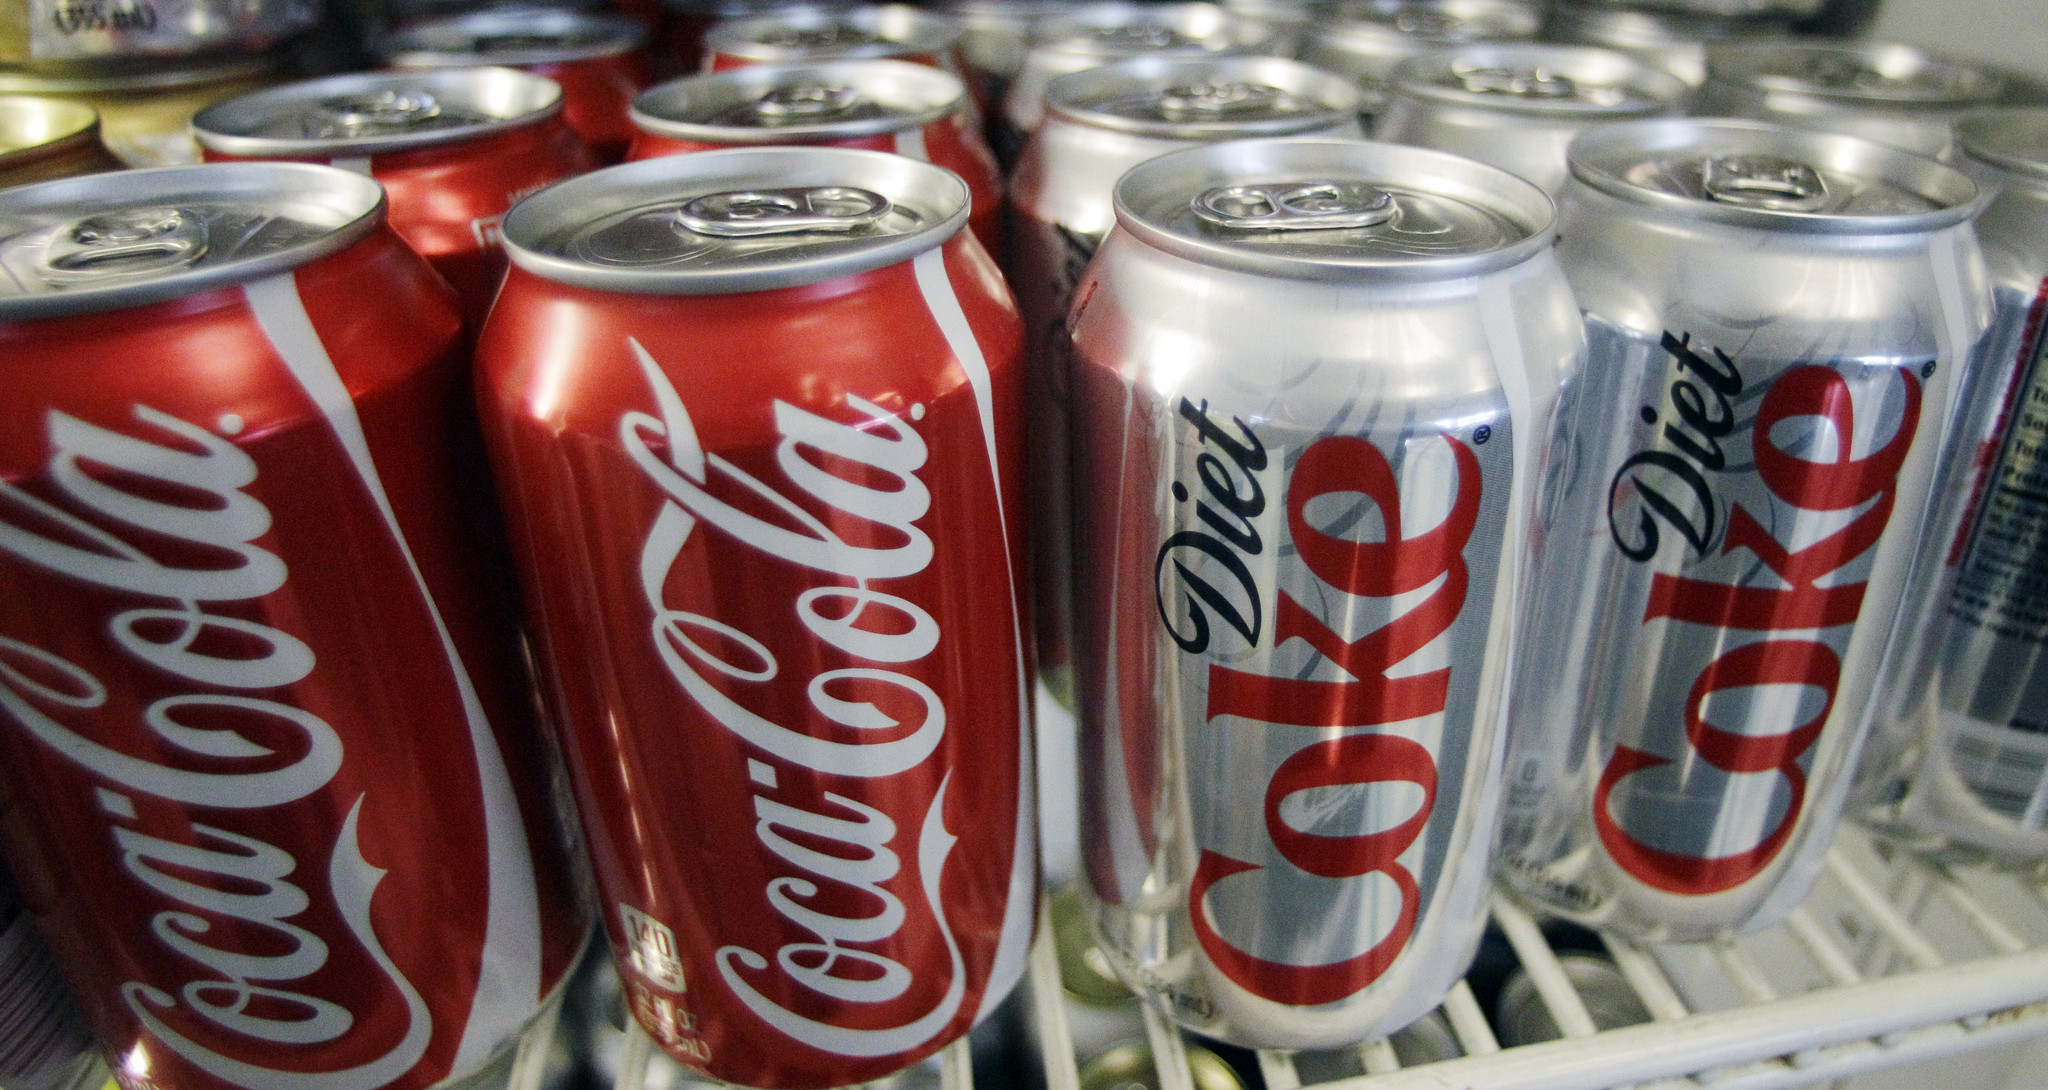 Coca-Cola's supply of diet, sugar-free drinks could be affected by coronavirus outbreak